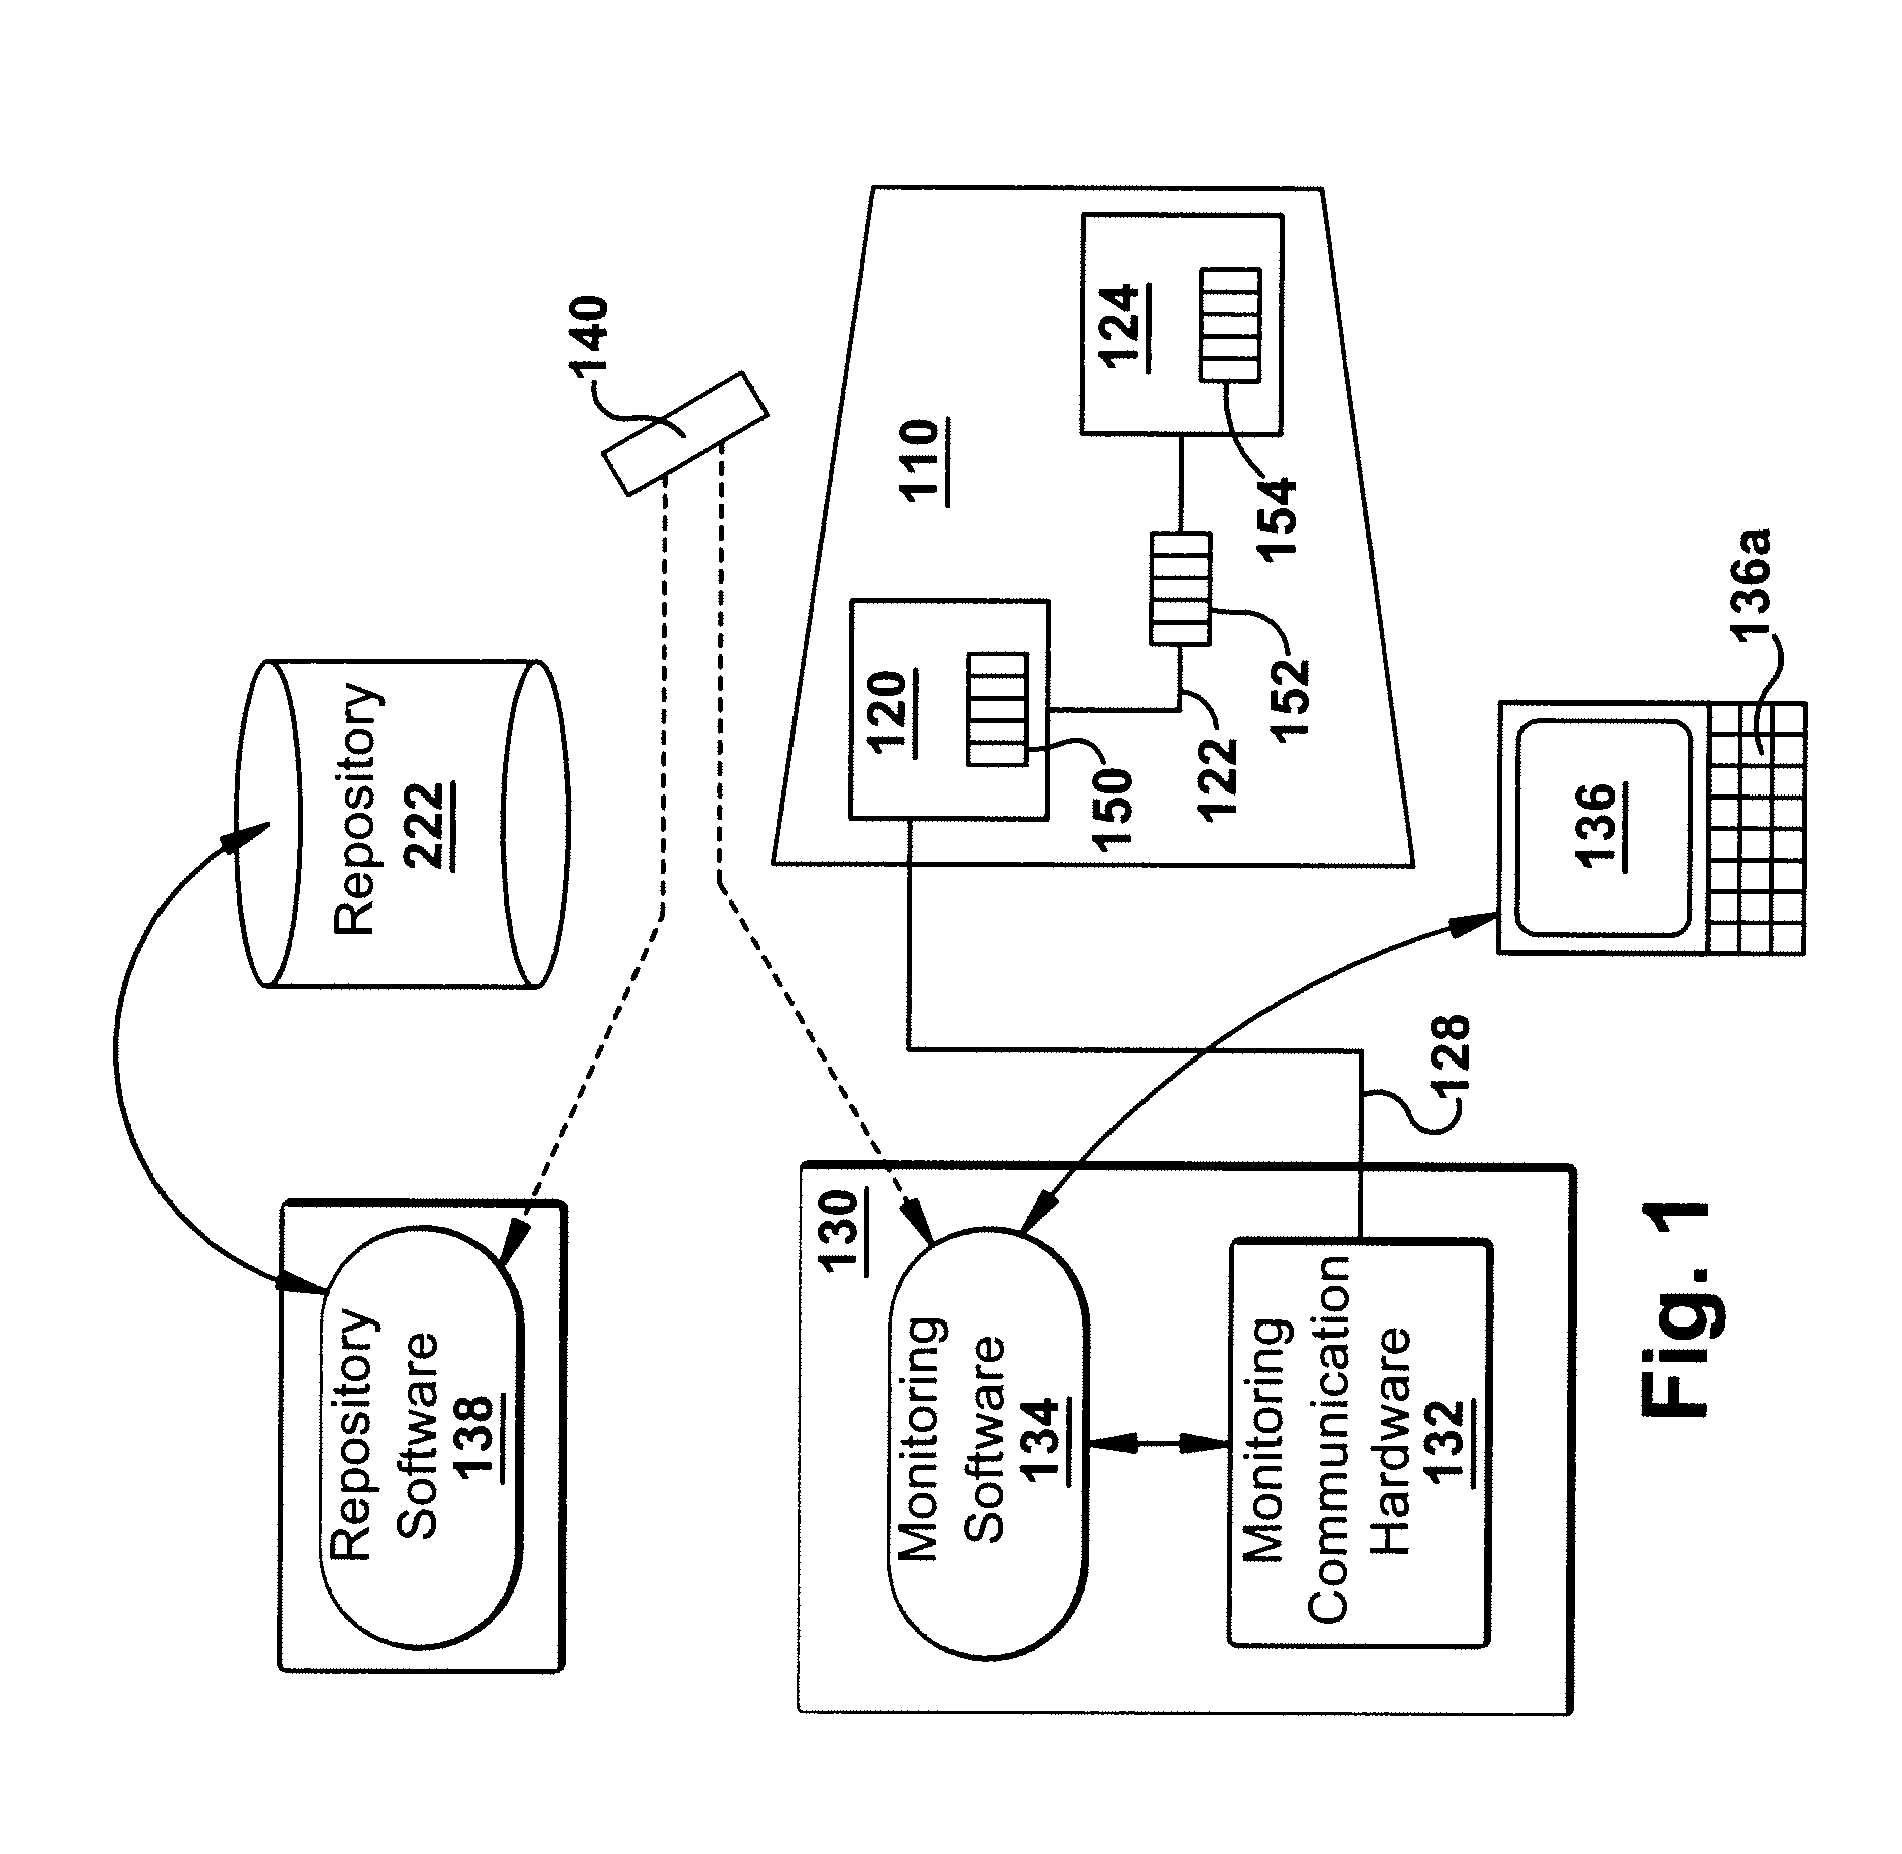 patent ep2573637a2 - system and method for equipment monitoring component configuration